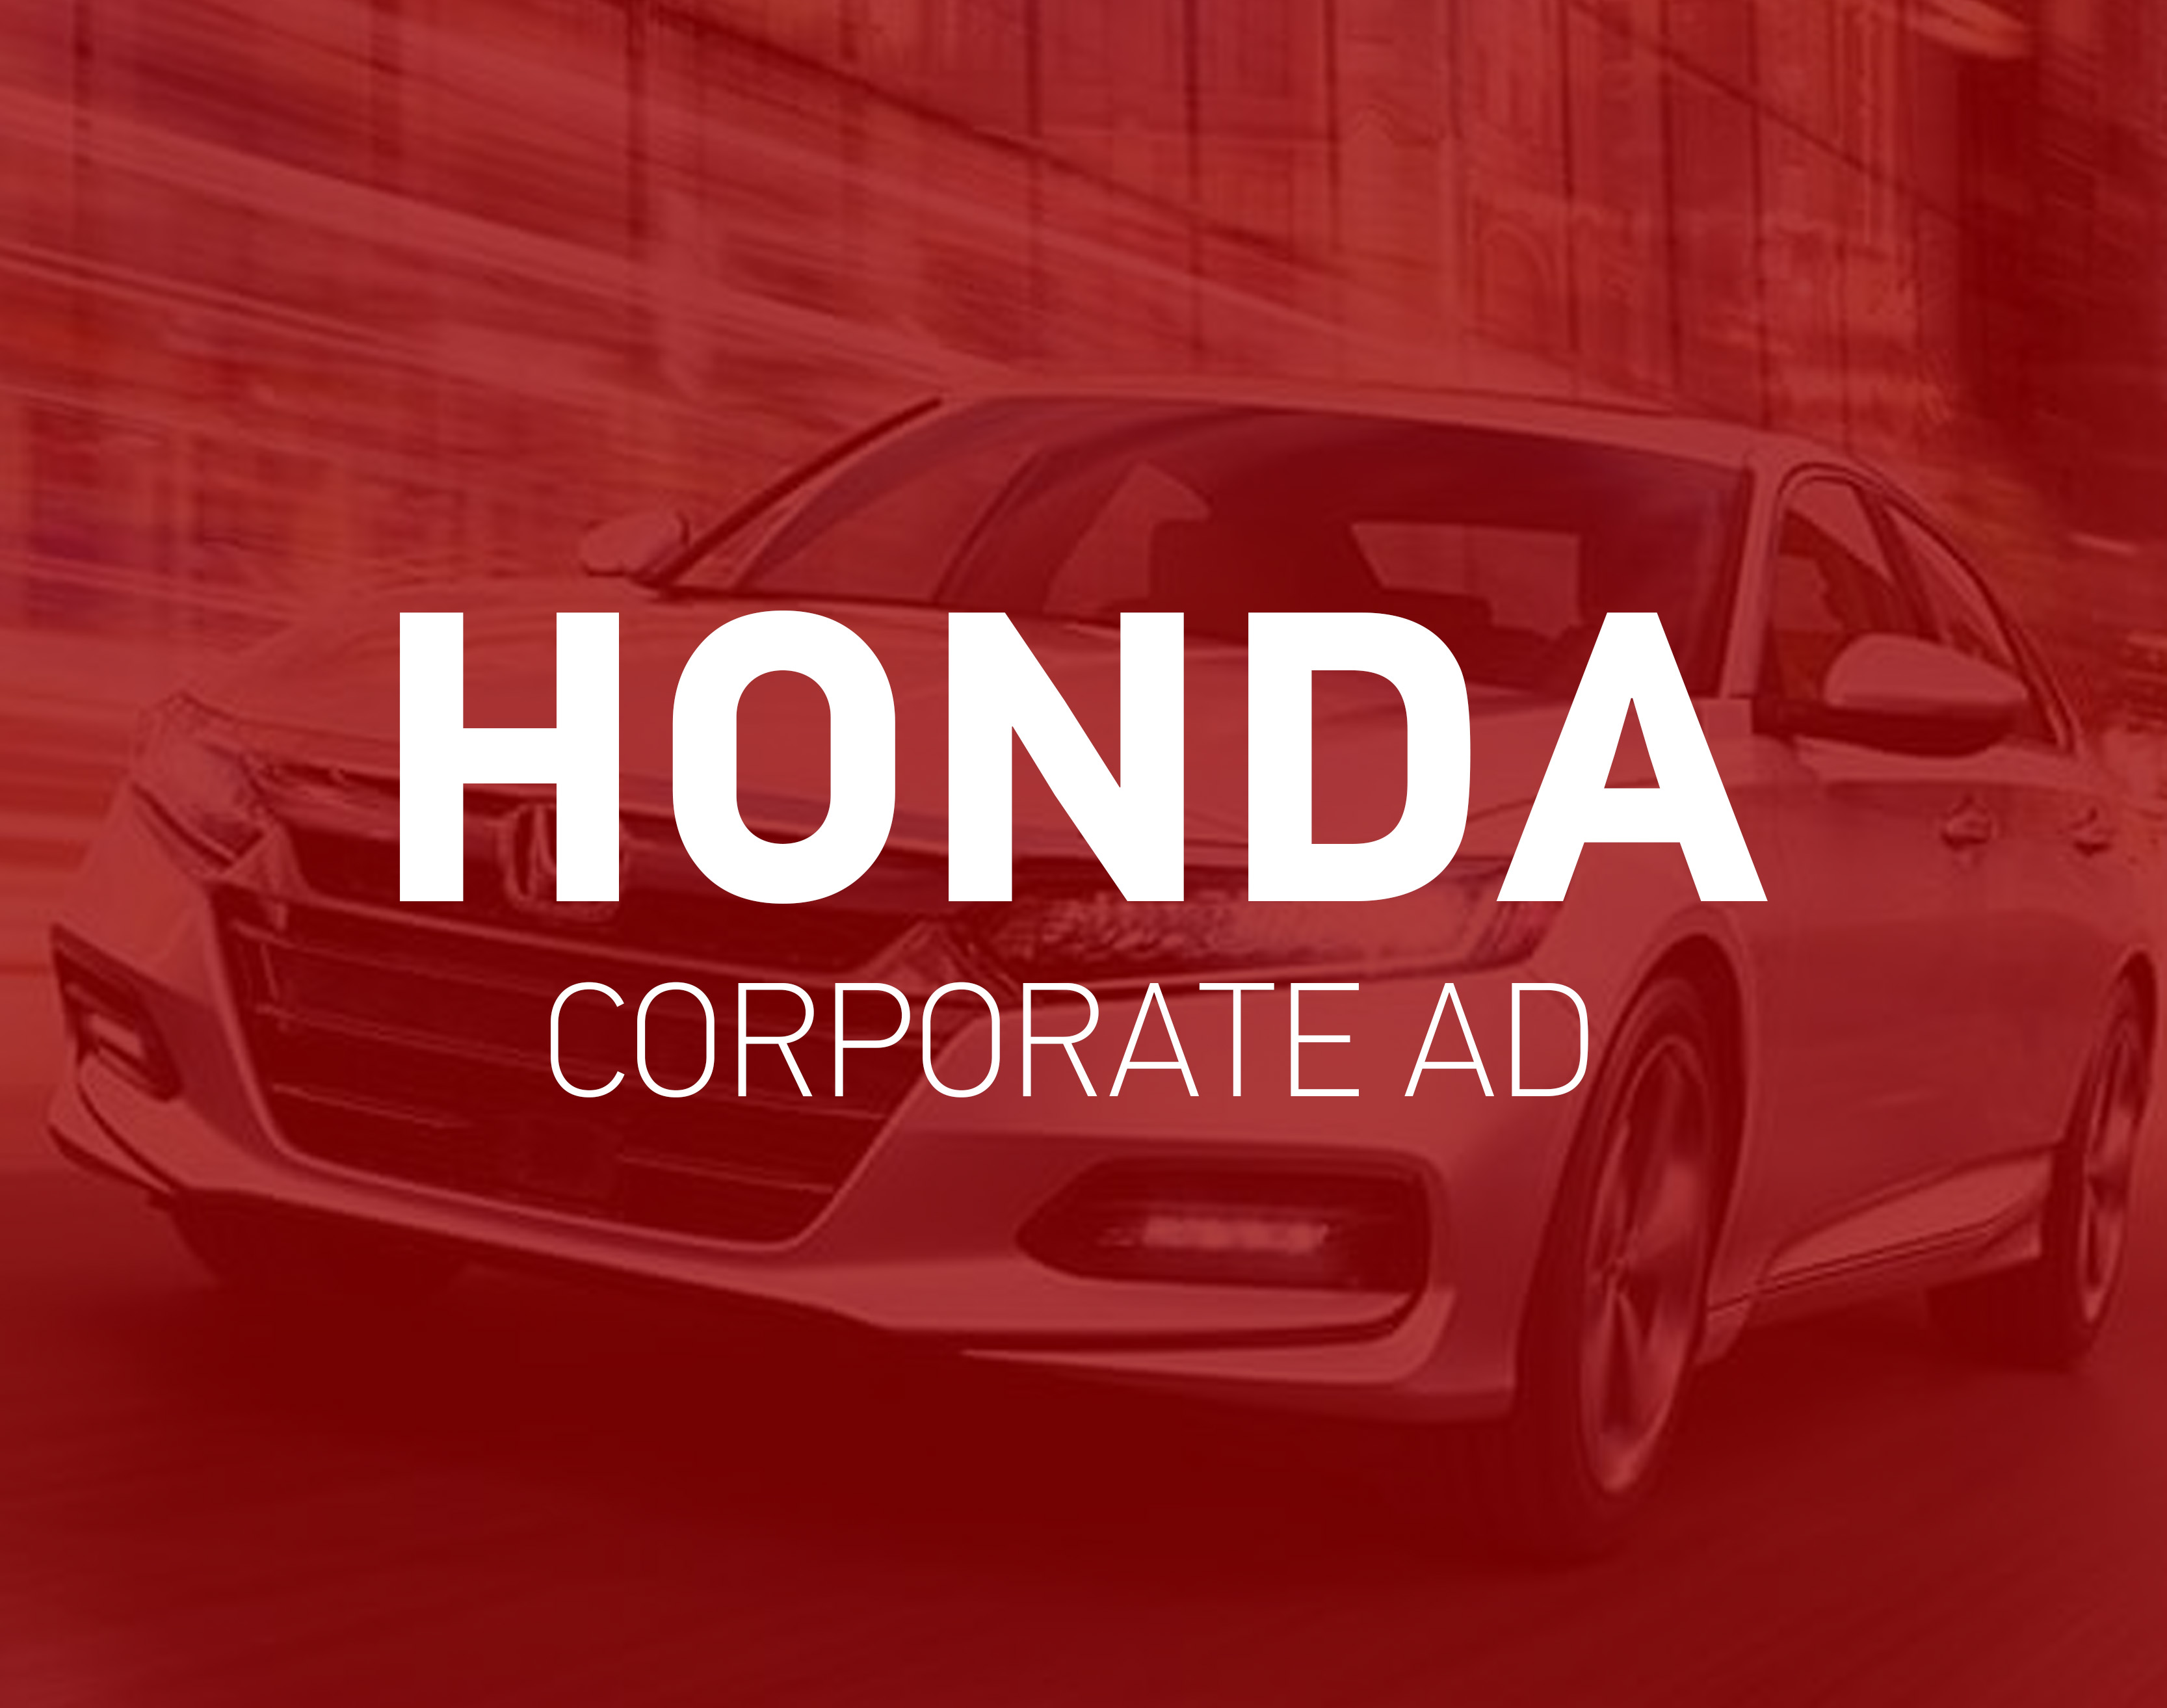 Honda Corporate Ad